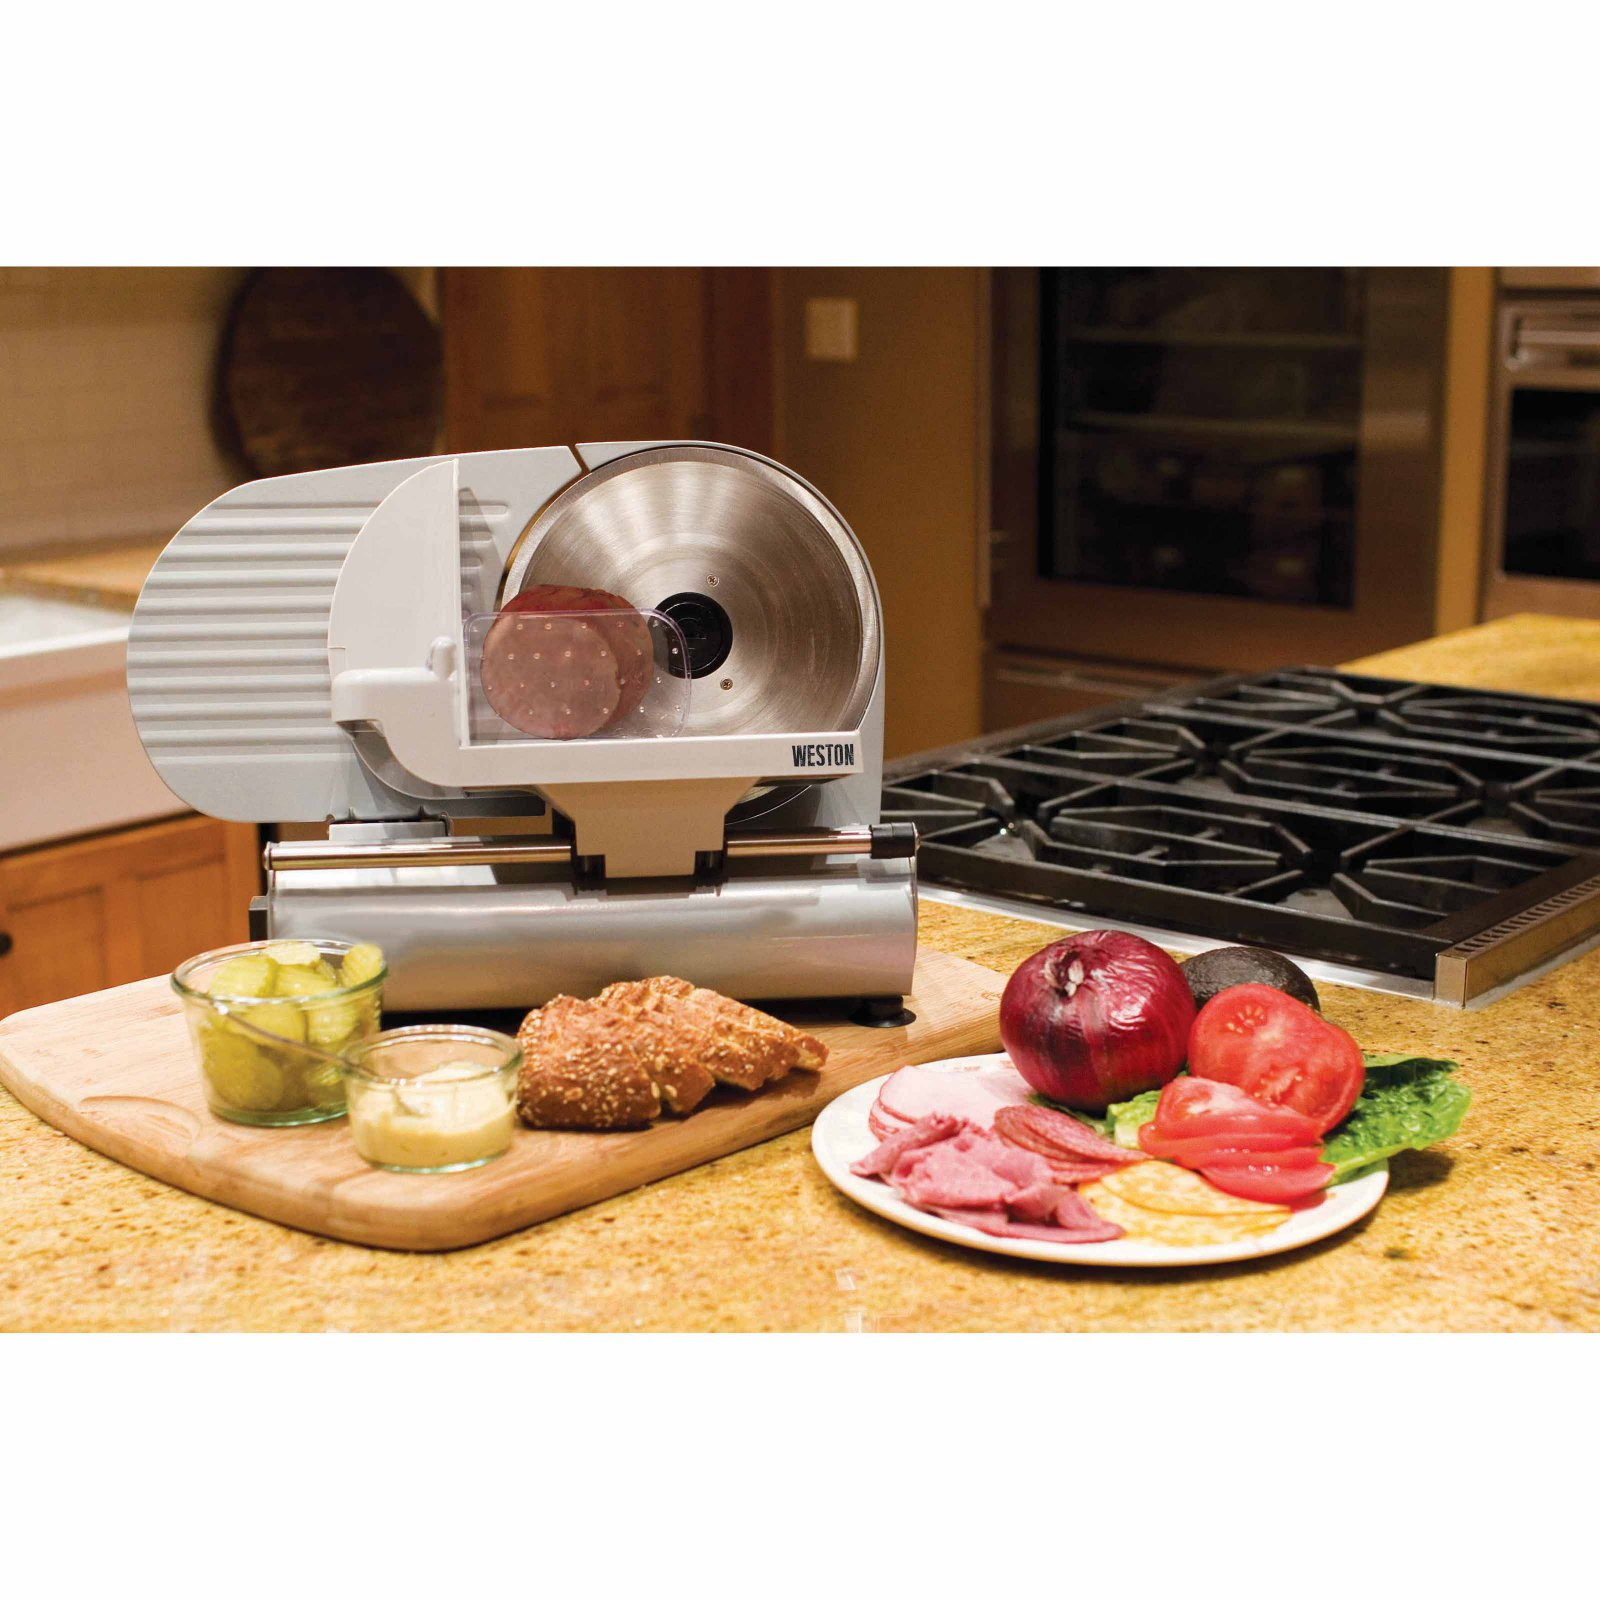 "Weston 9"" Meat and Vegetable Slicer, Stainless Steel"